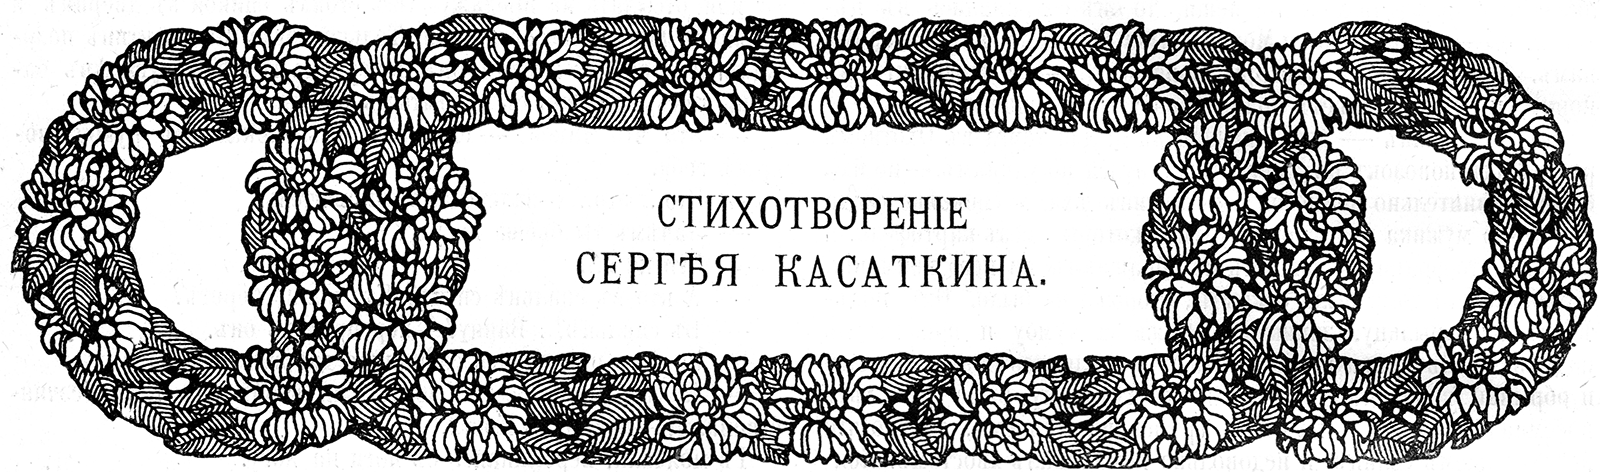 Niva-1911-10-elements-kasatkin-header.png